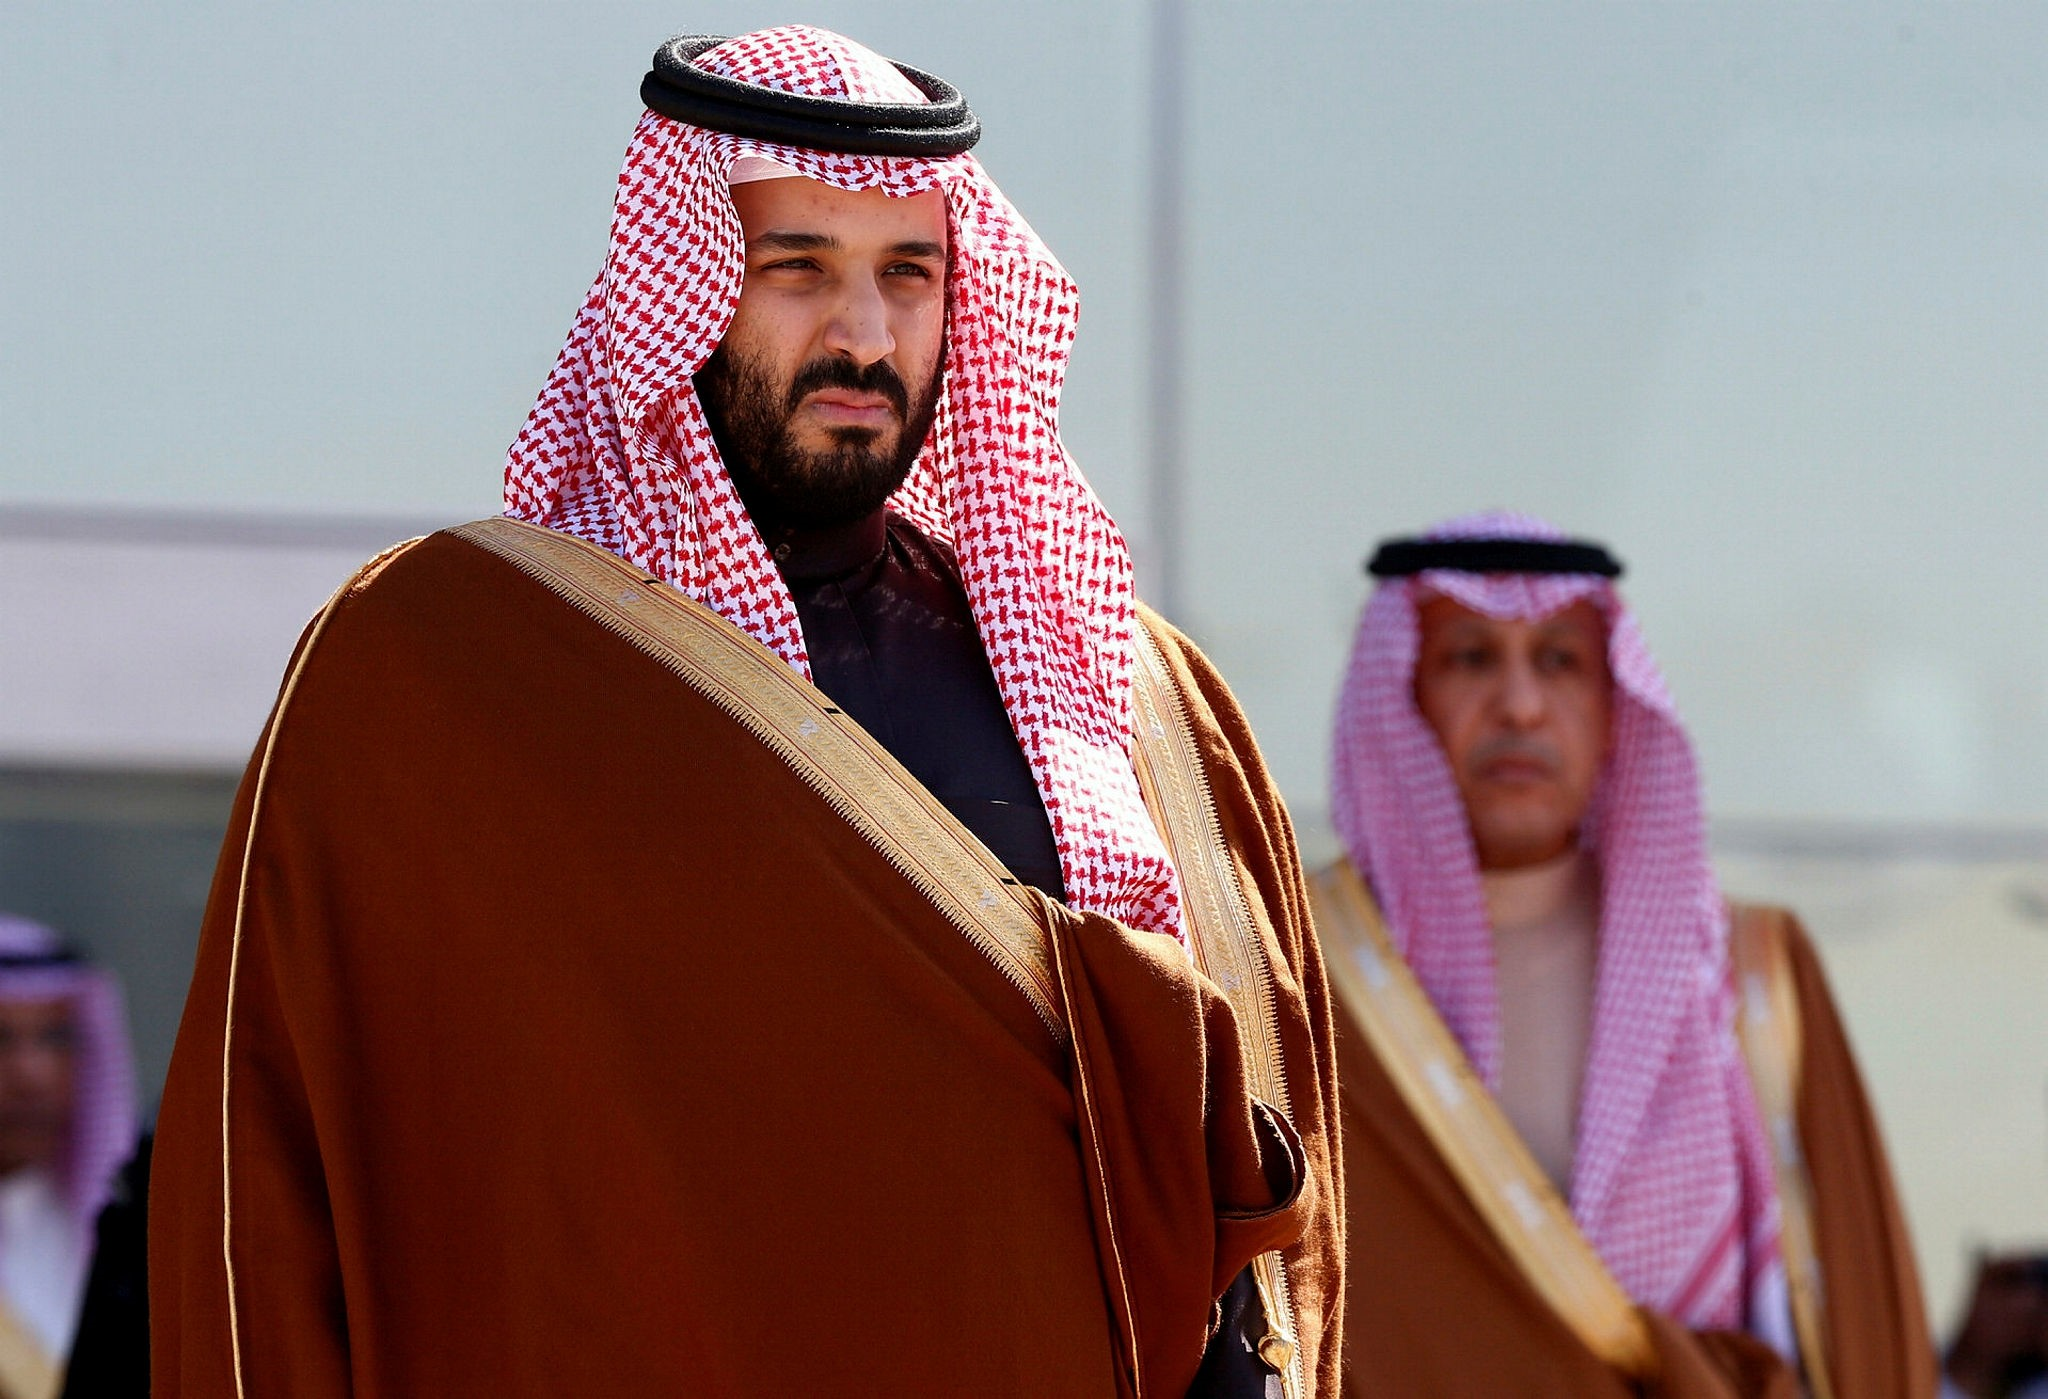 FILE PHOTO: Saudi Deputy Crown Prince Mohammed bin Salman attends a graduation ceremony and air show marking the 50th anniversary of the founding of King Faisal Air College in Riyadh, Saudi Arabia, January 25, 2017. (Reuters Photo)